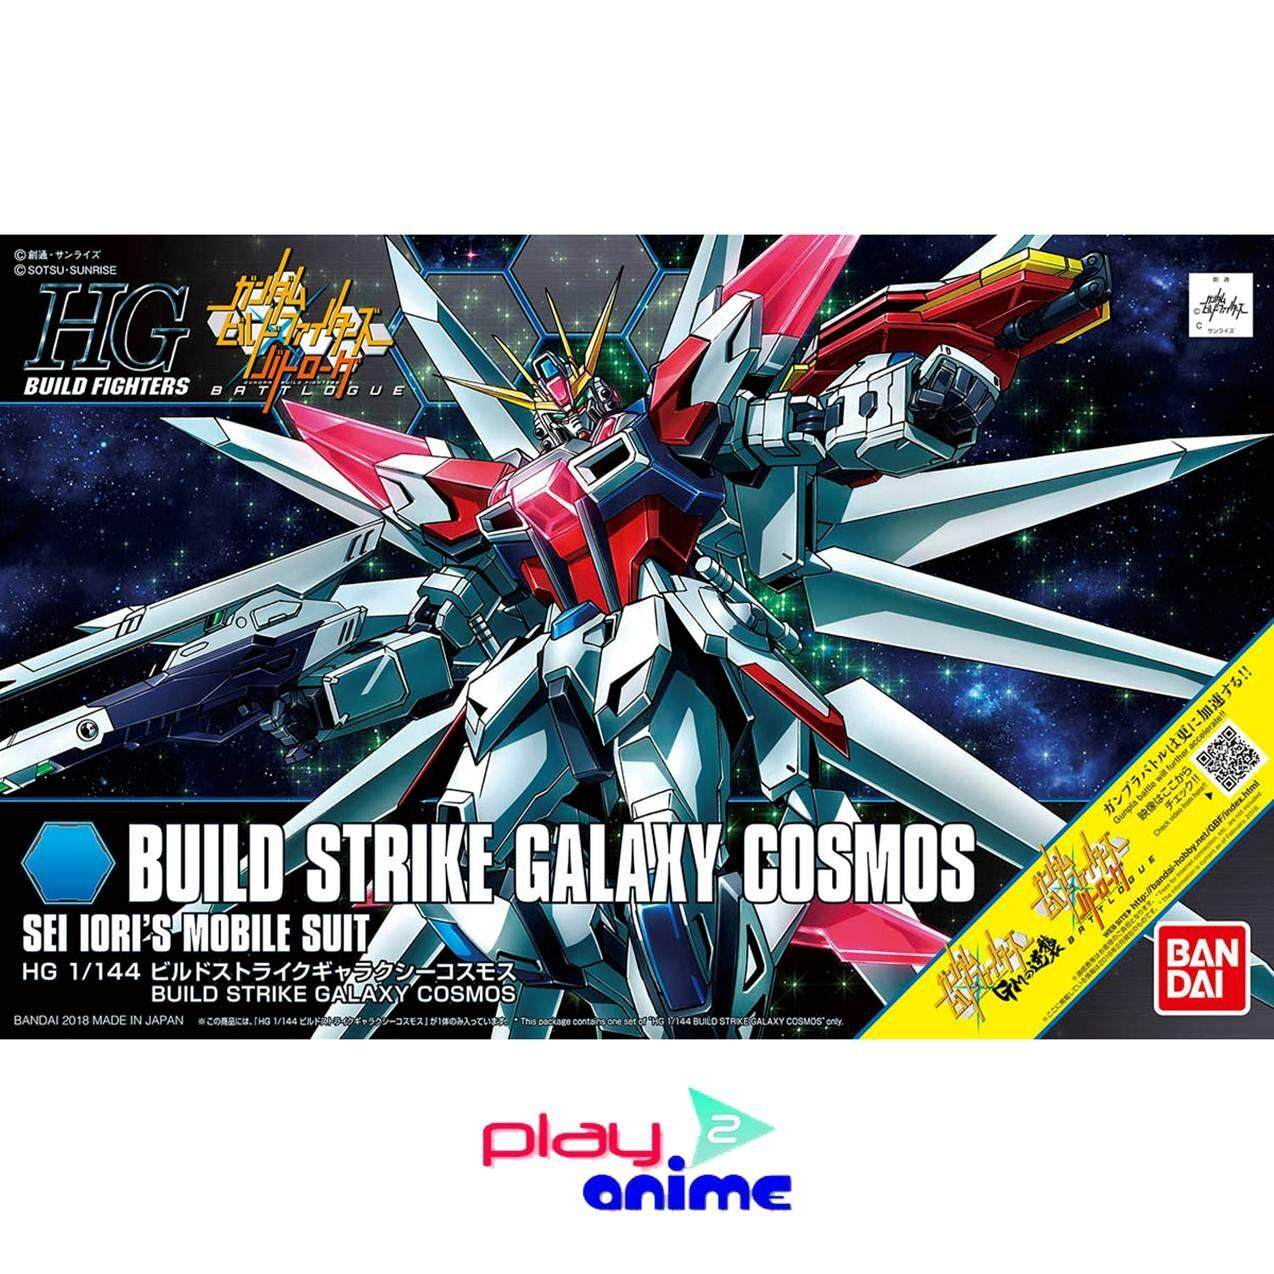 ราคา Bandai 1 144 High Grade Build Strike Galaxy Cosmos Bandai เป็นต้นฉบับ